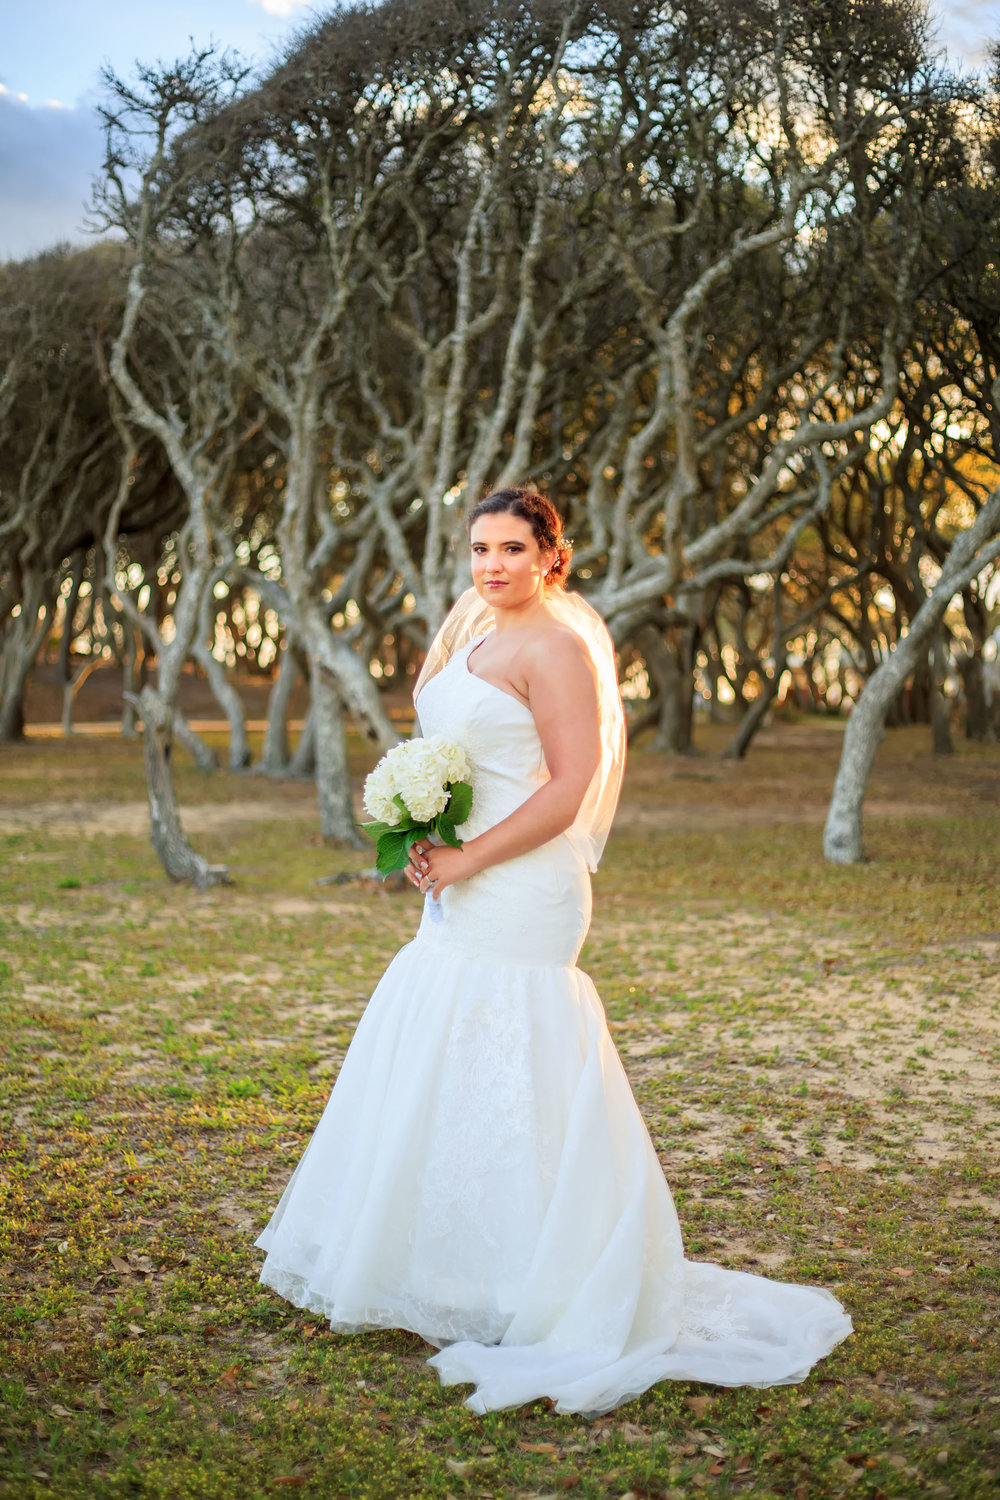 Fort-Fisher-Wedding-Bridal-Portrait-Tiffany-Abruzzo-Photography-25.jpg